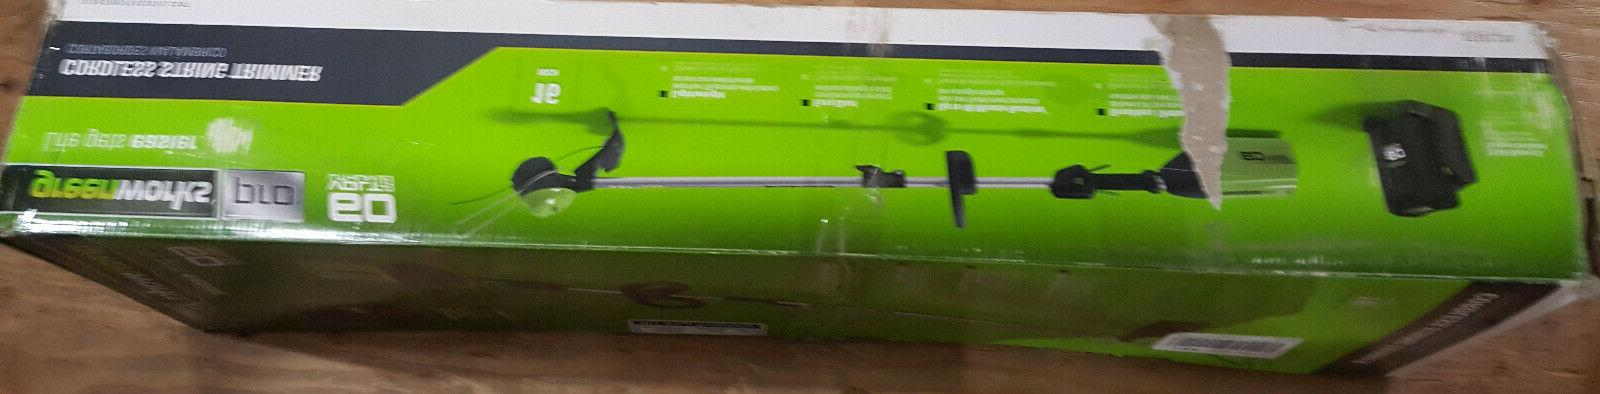 BRAND NEW volt CORDLESS weed string trimmer